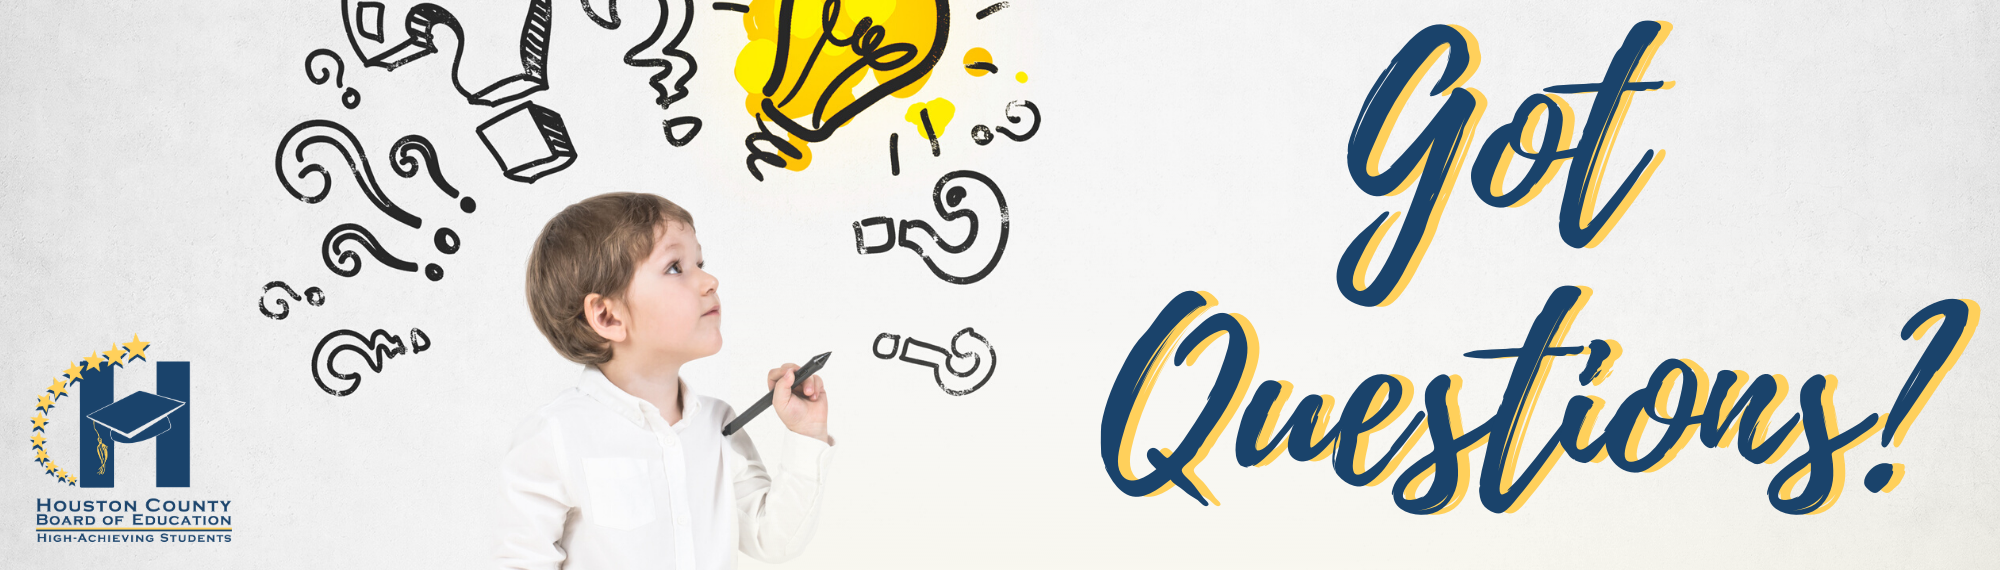 Got Questions?  Click the button to view our FAQs